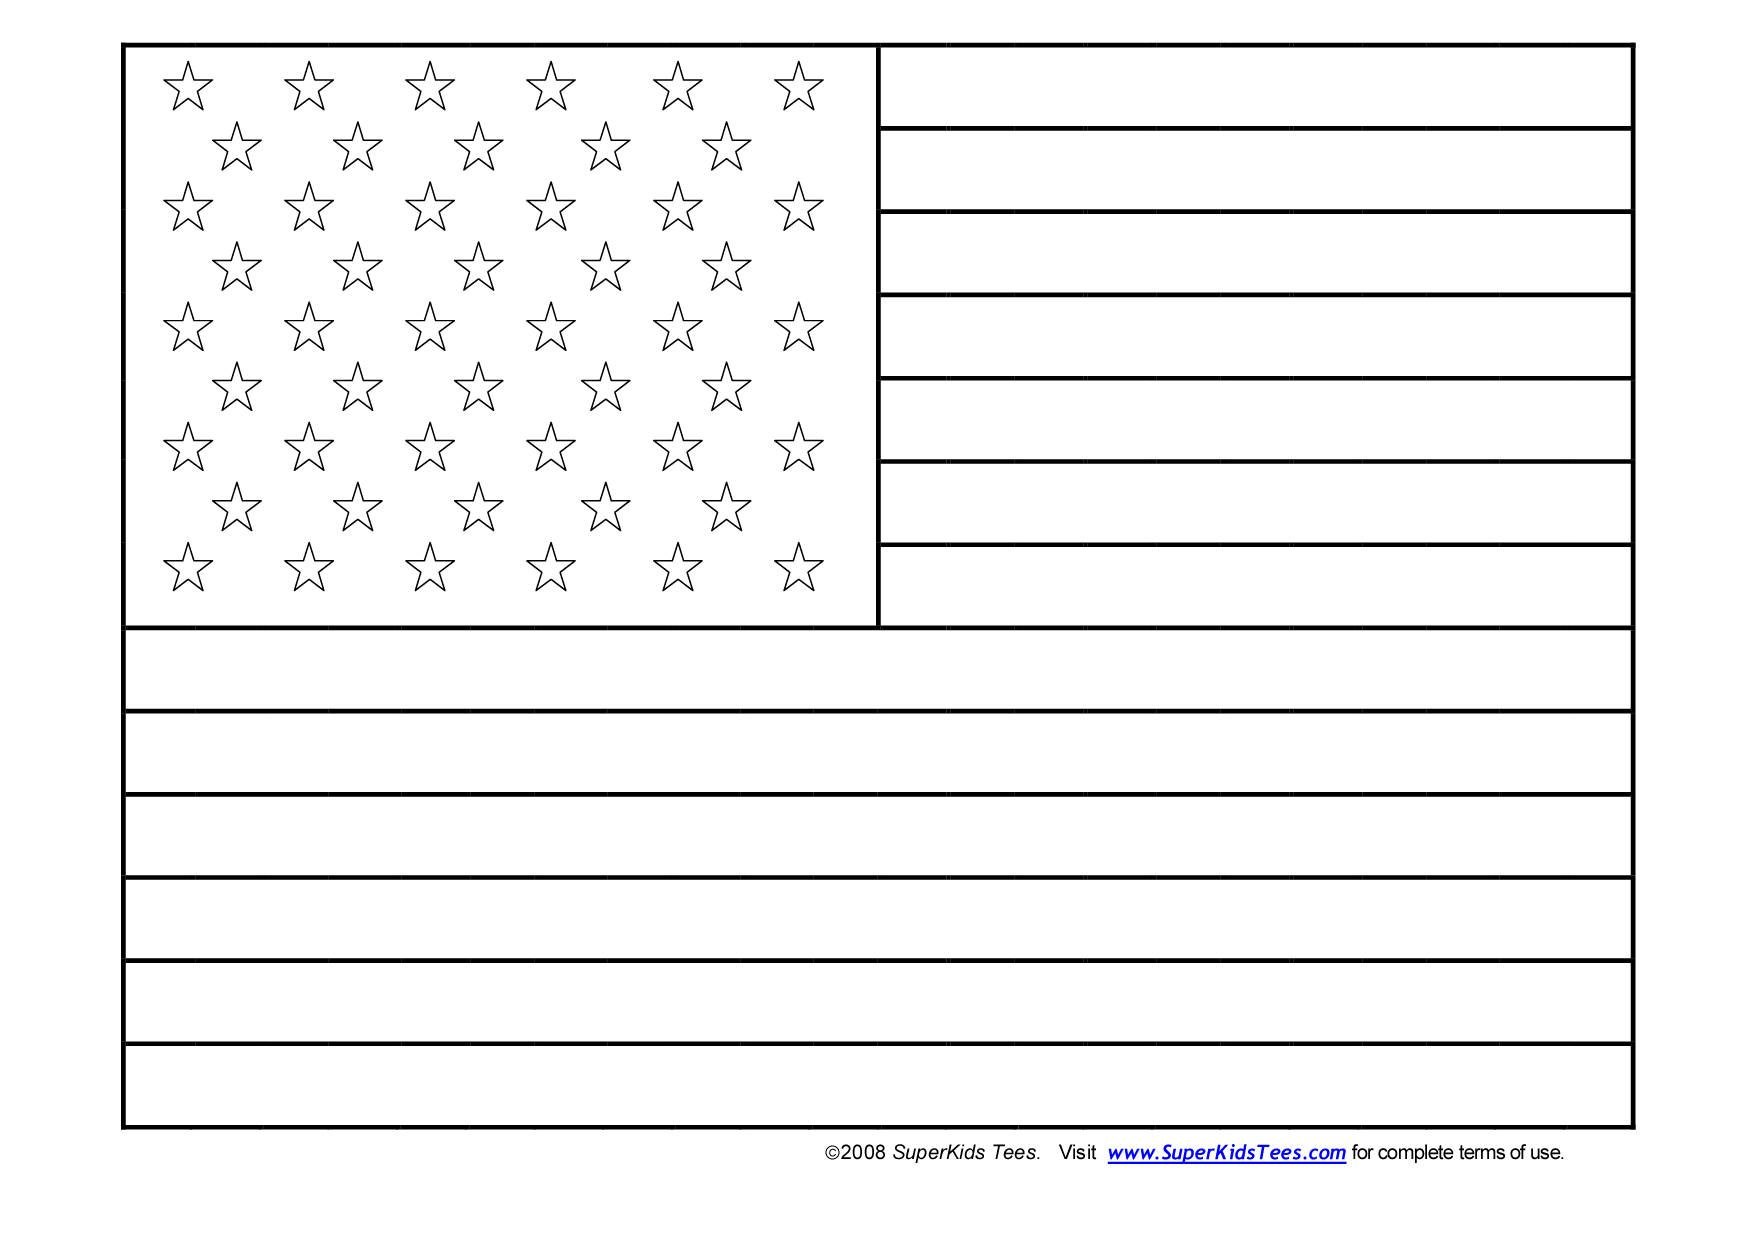 united states flag coloring page us map template for kids state flag coloring pages for united flag states page coloring